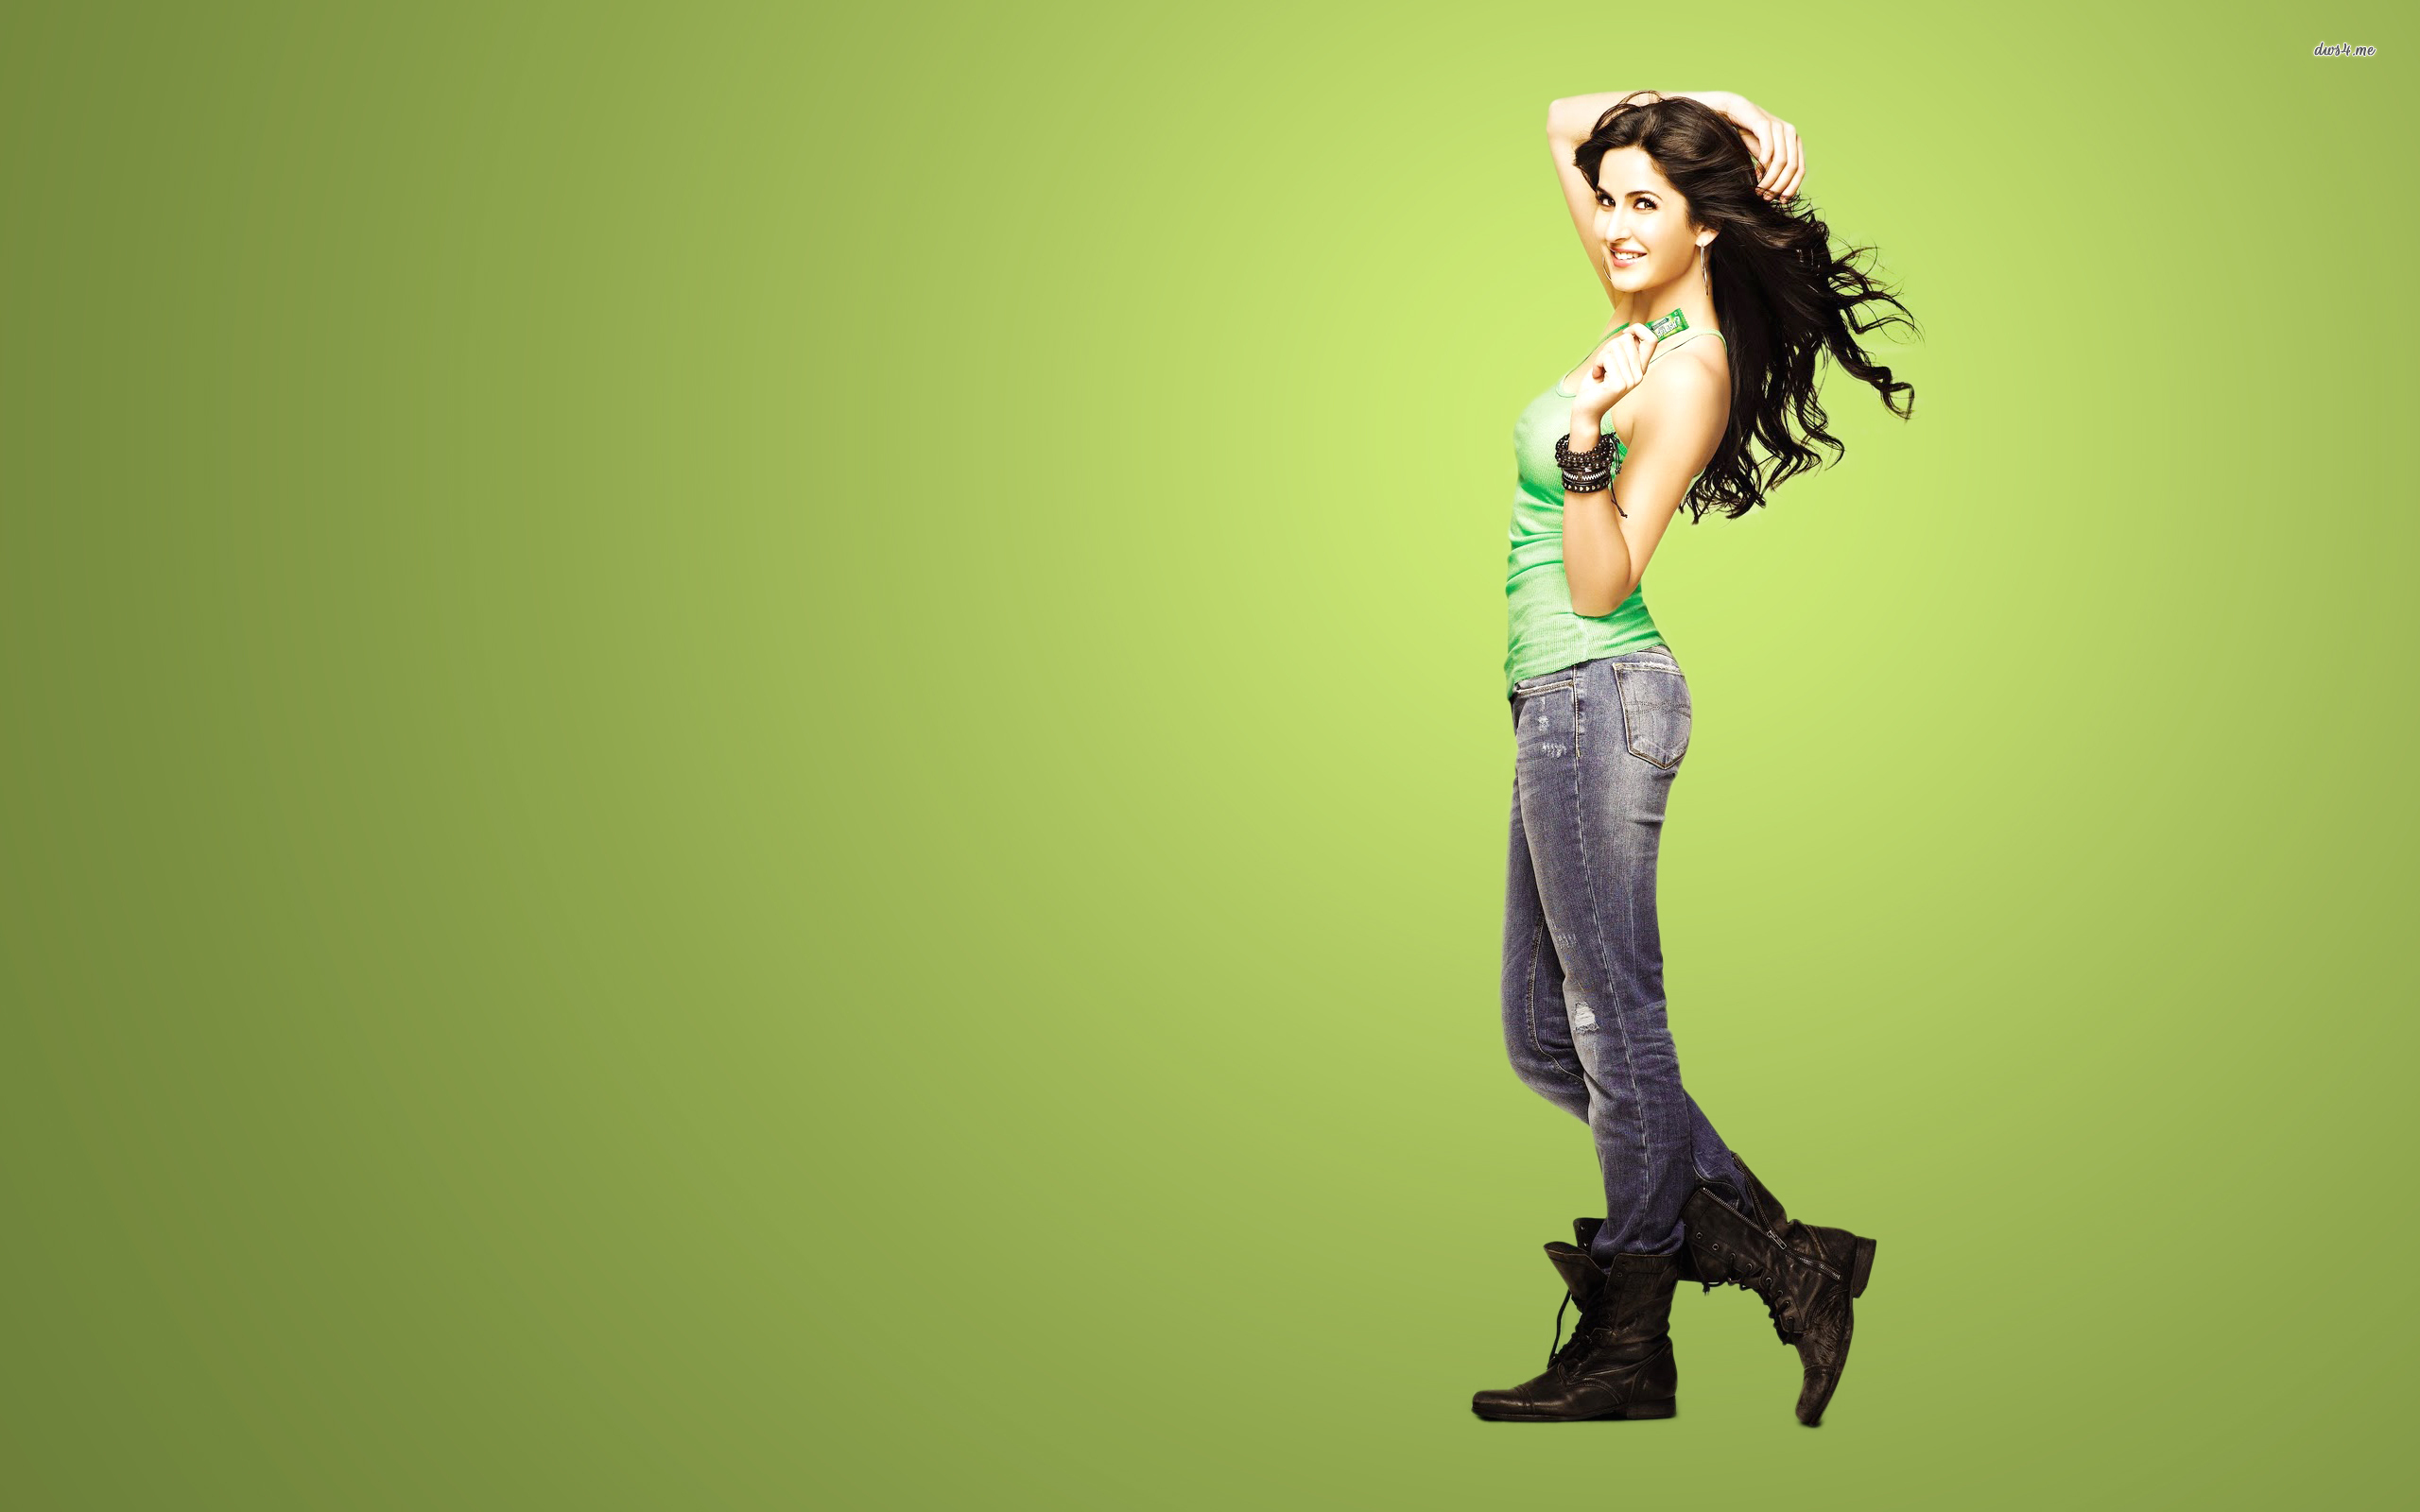 Bollywood Actress Full Size Hd , HD Wallpaper & Backgrounds